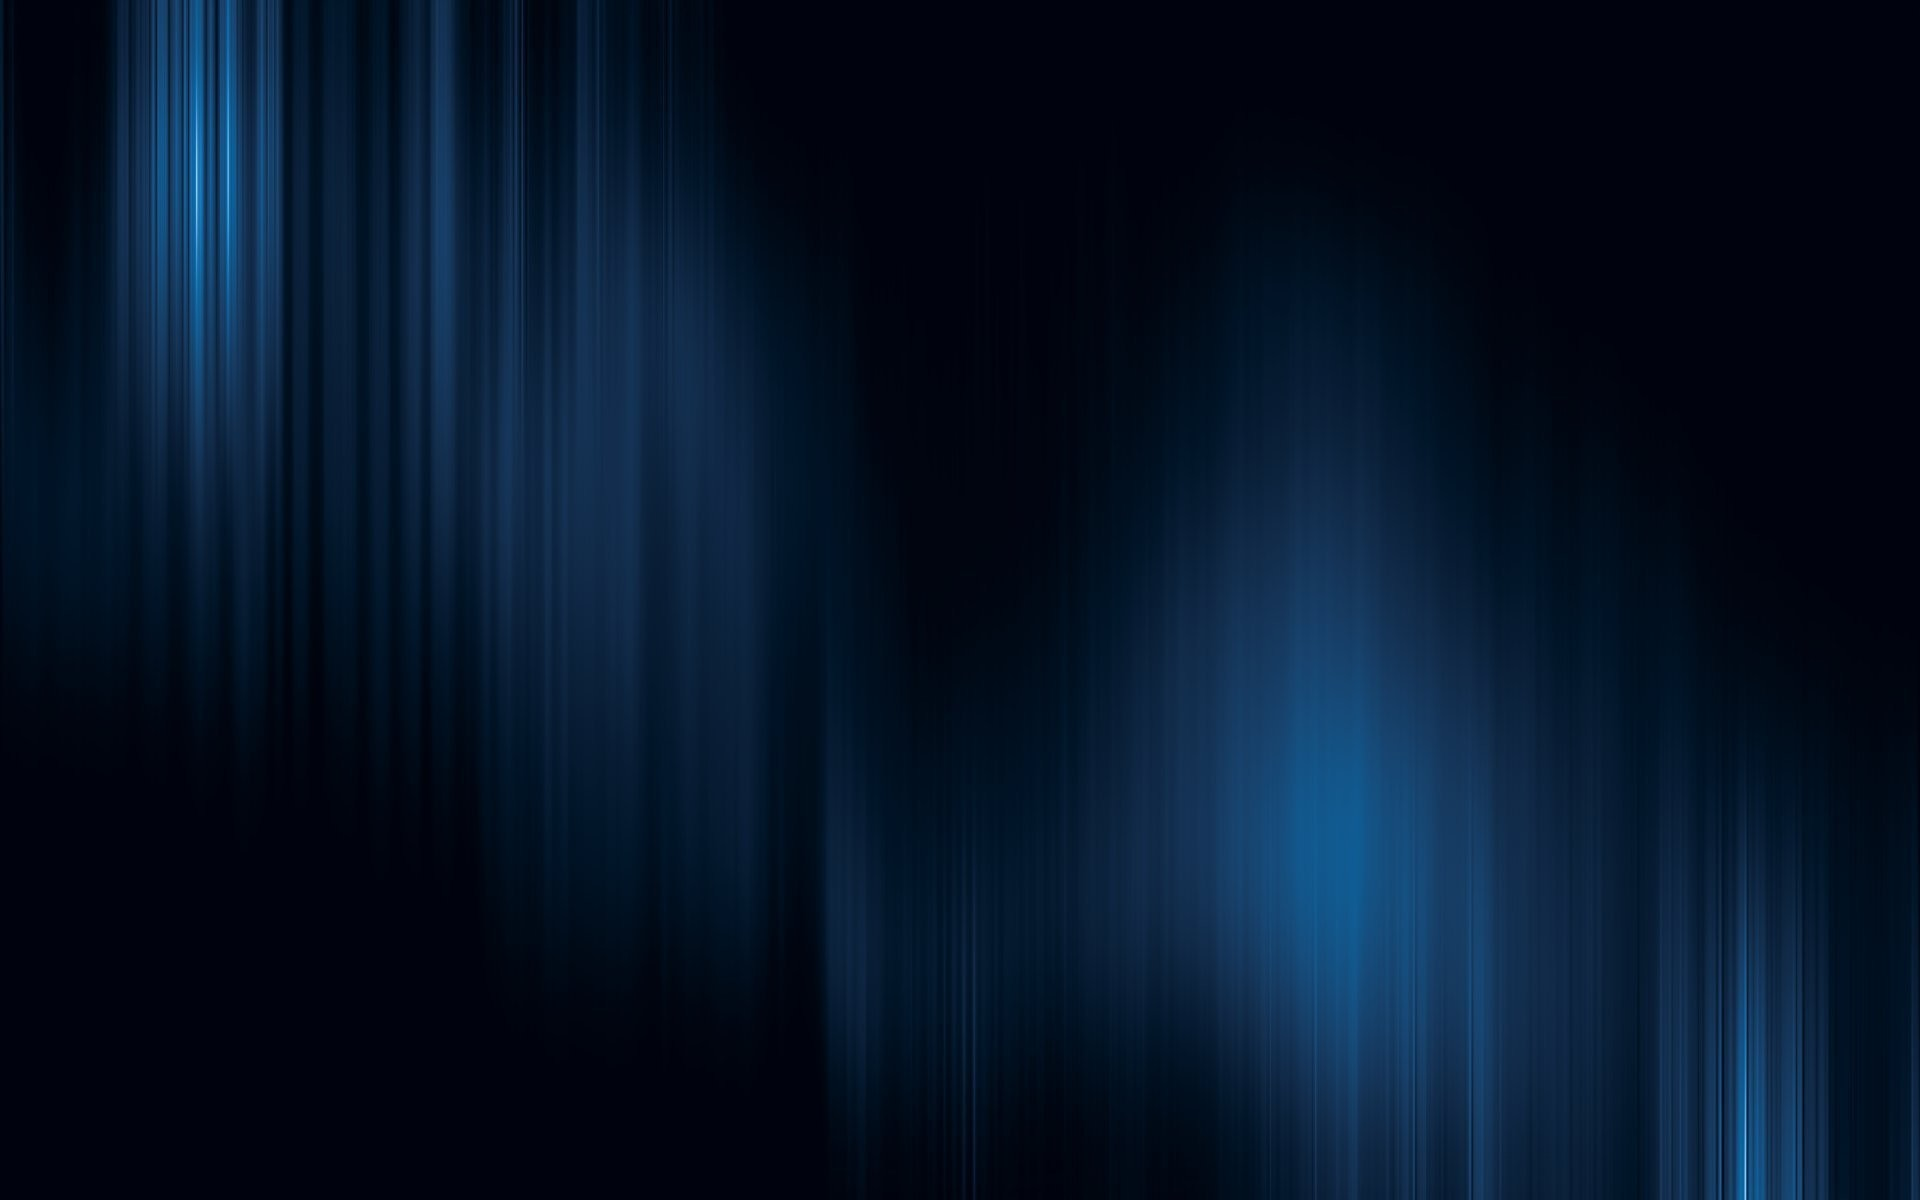 Black background blue stripes light wallpapers photos pictures women .